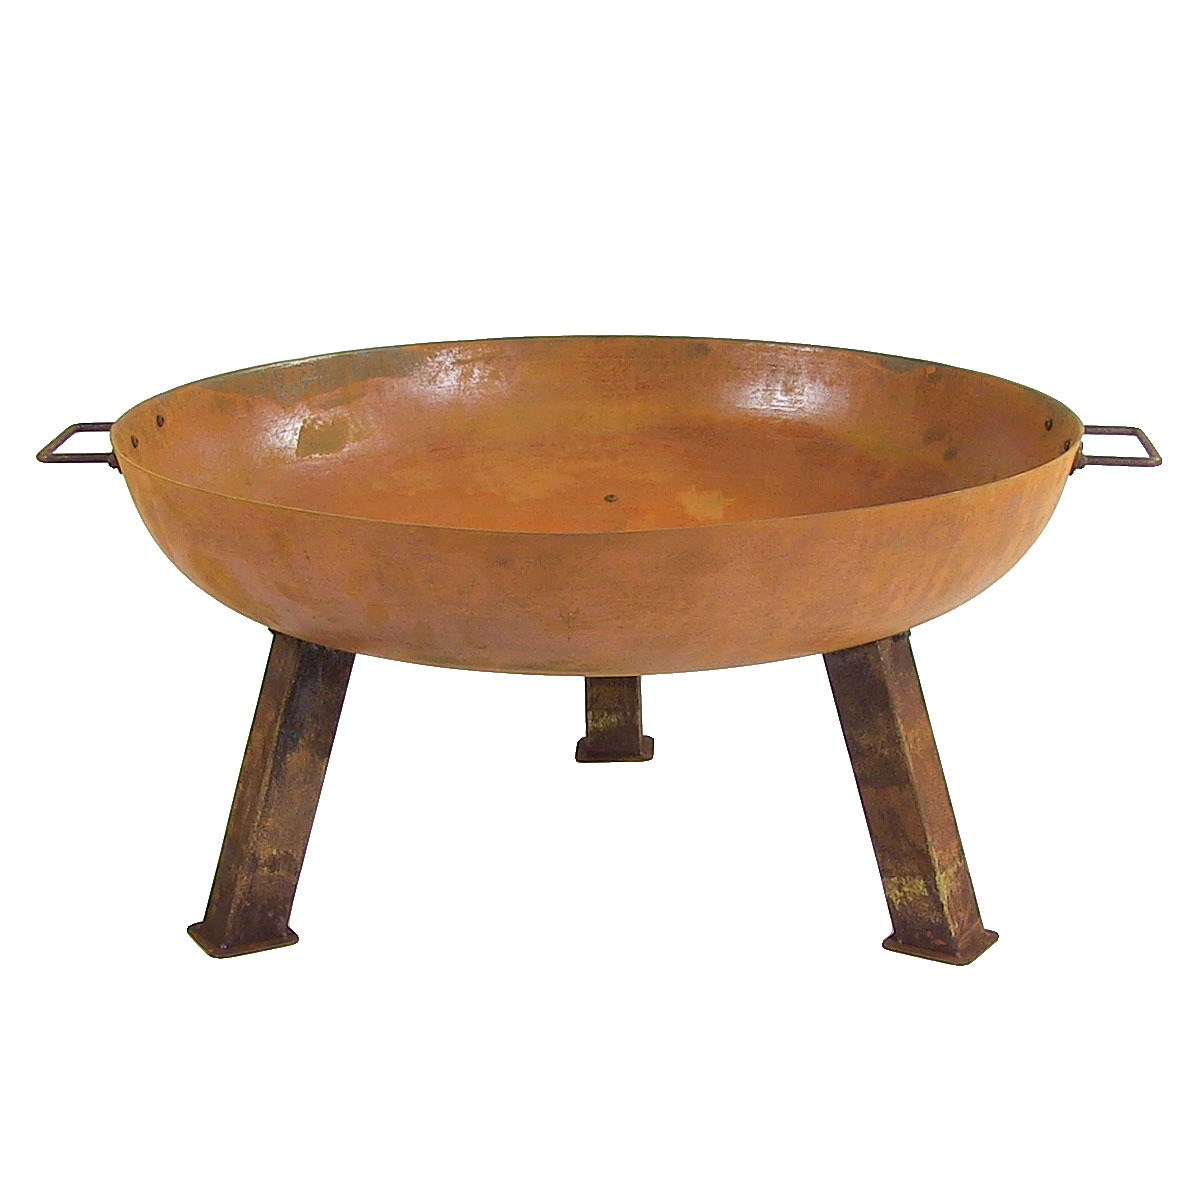 Sunnydaze Outdoor Small Fire Pit Bowl, Rustic Cast Iron, Wood Burning, 30 Inch - For Patio, Backyard, or Camping